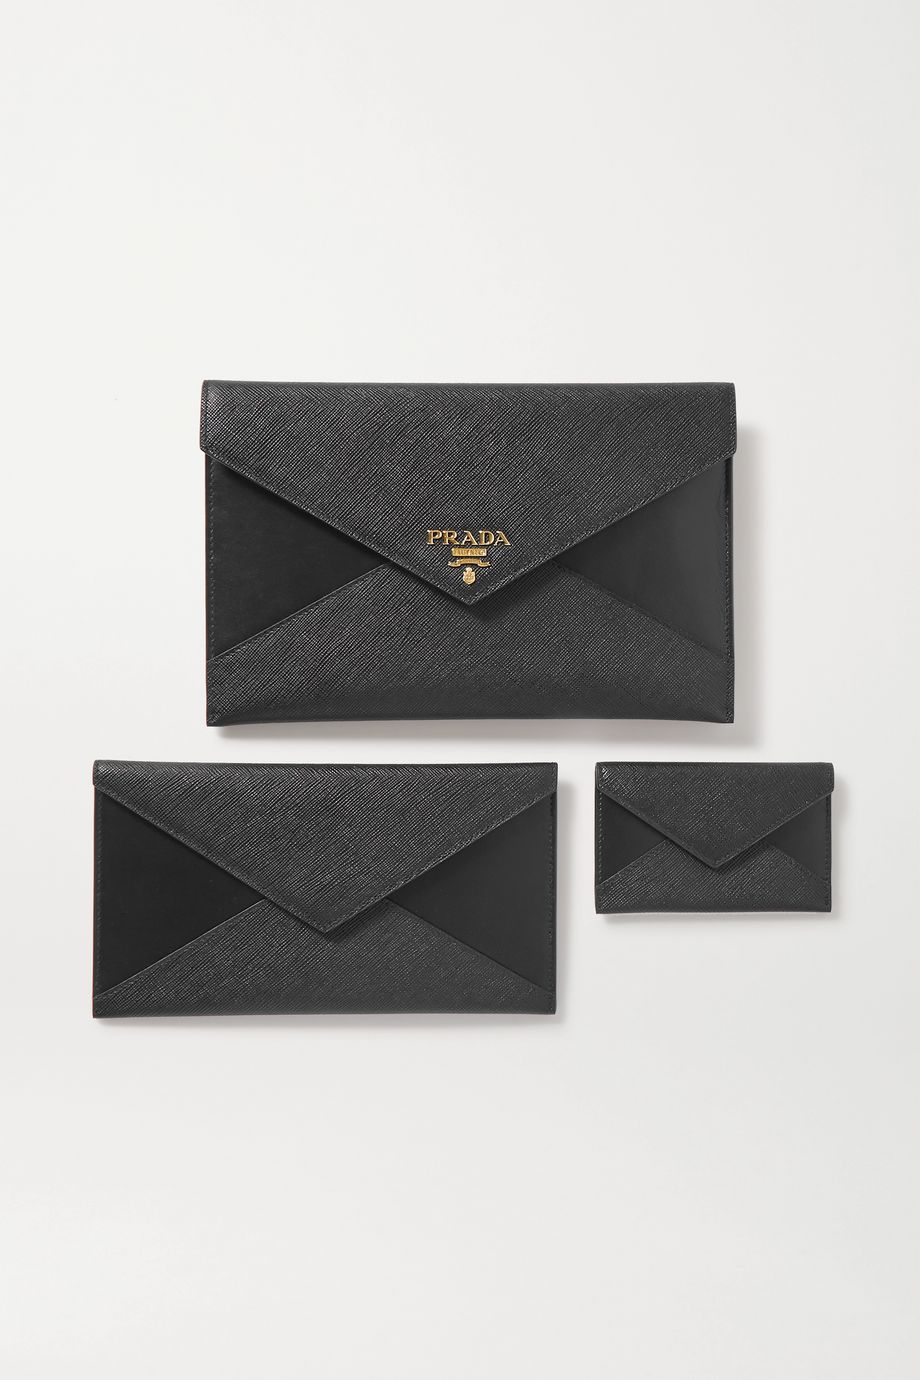 Prada Paneled leather pouch